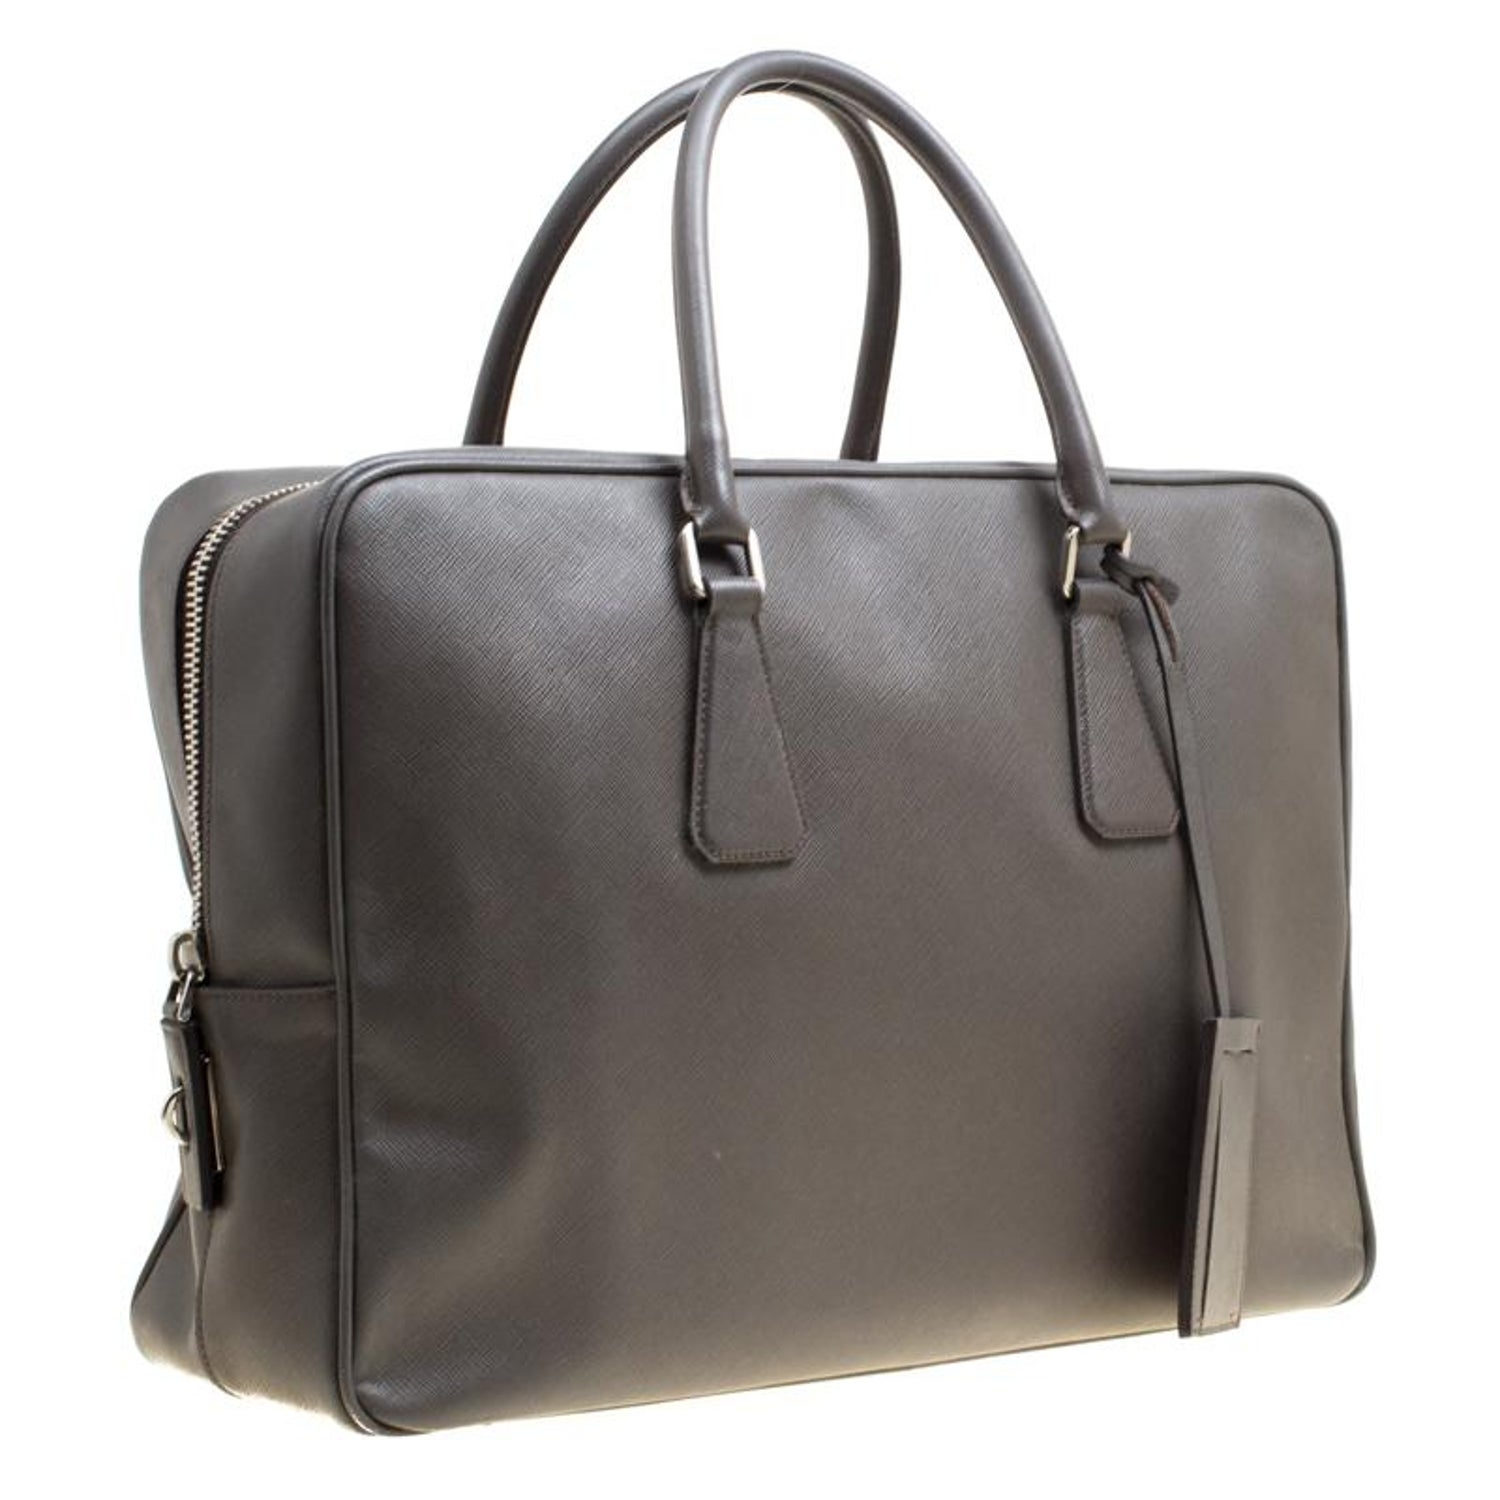 ed2fe1aa1ff47f Prada Grey Saffiano Leather Briefcase For Sale at 1stdibs